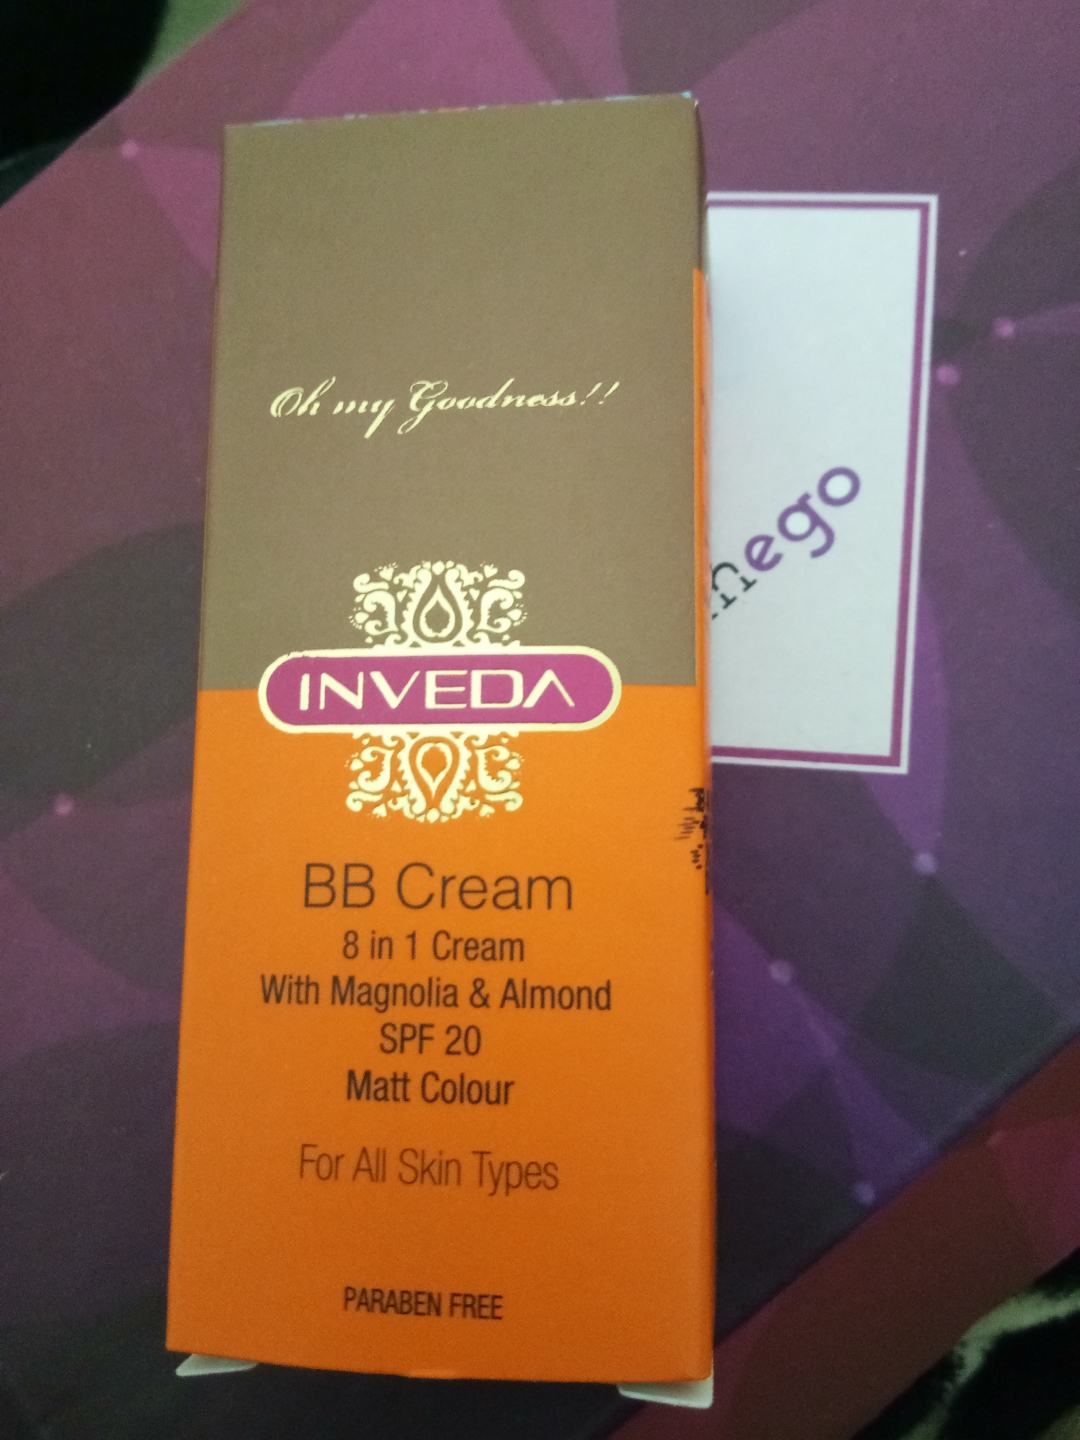 Inveda - Magnolia BB Cream in GlamEgo August 2017 Box